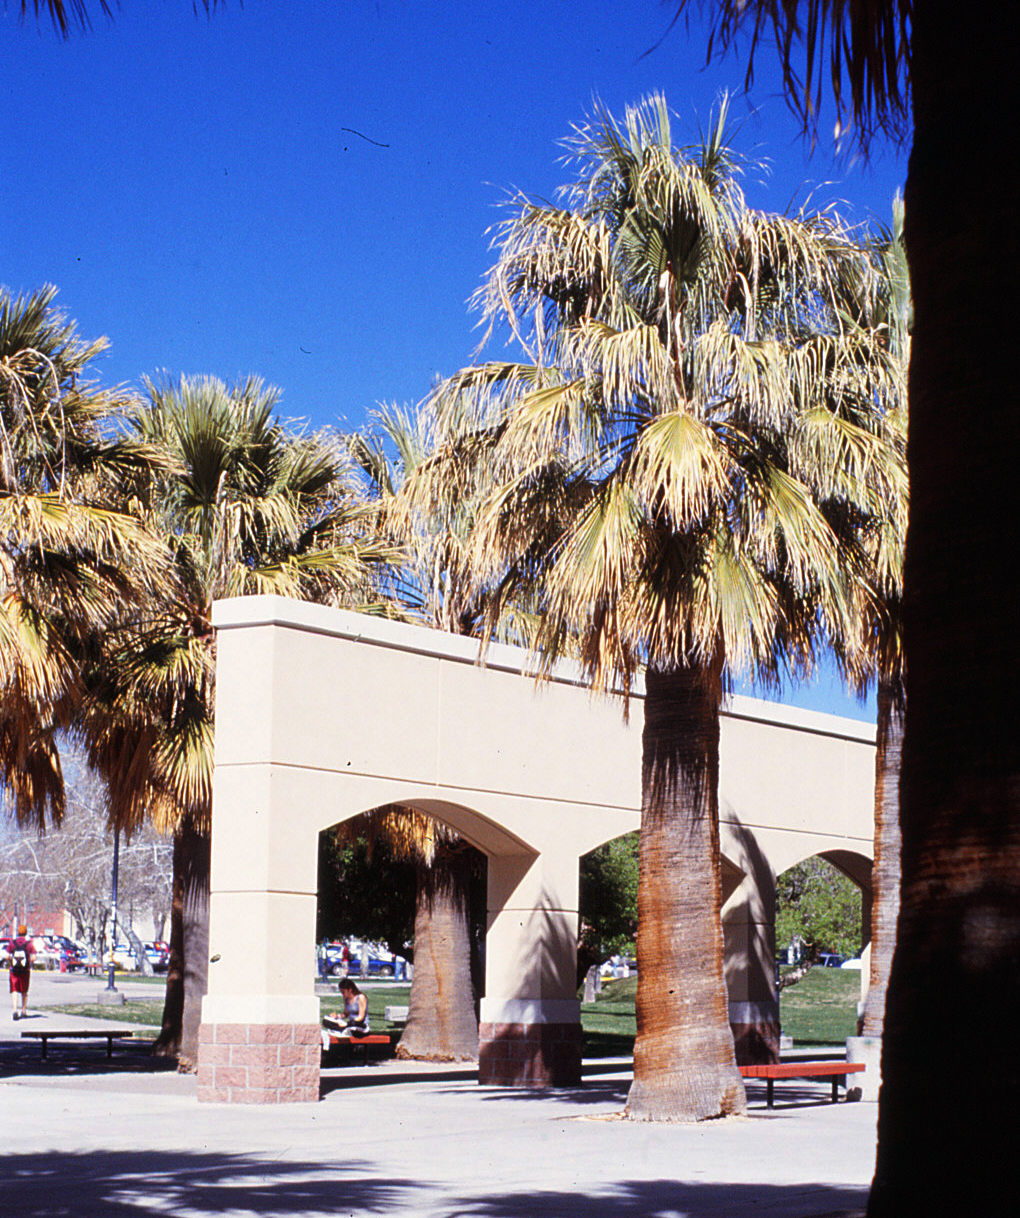 Zuhl library entry and palm trees